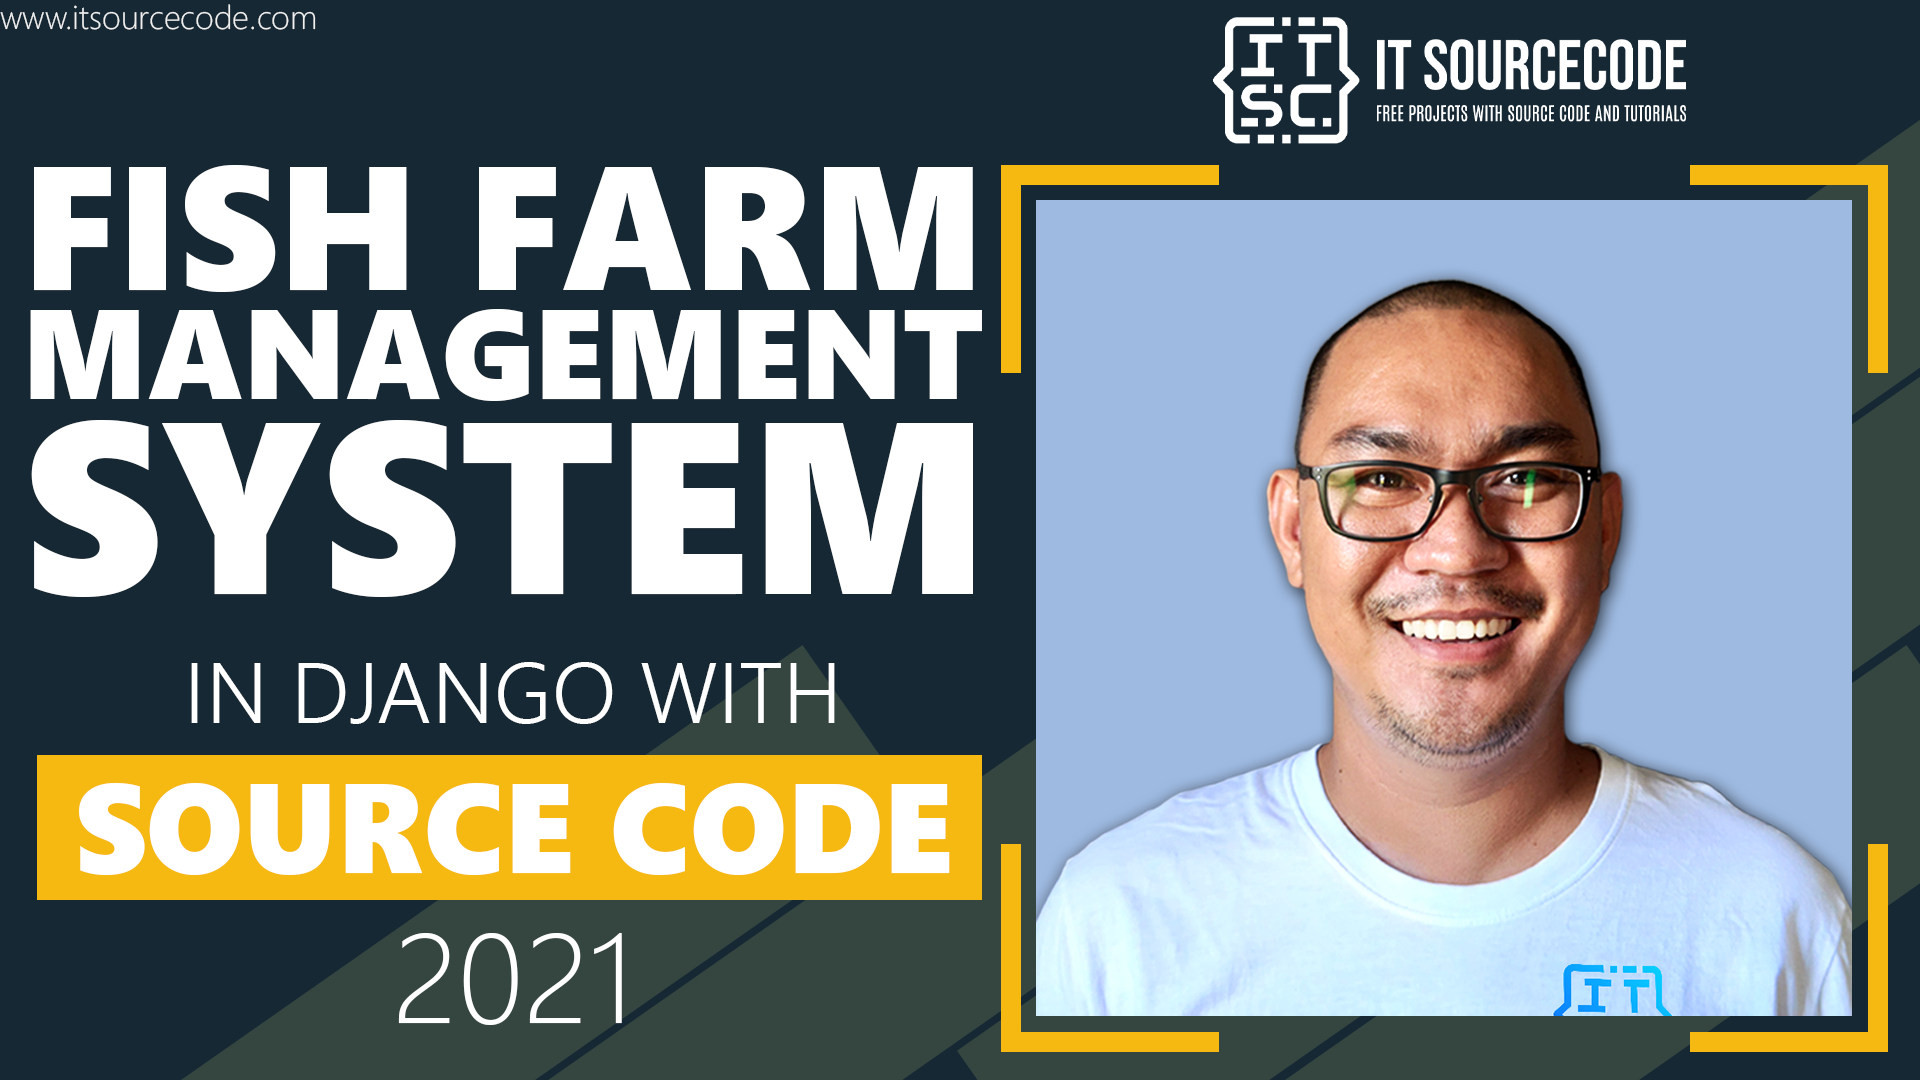 Fish Farm Management System in Django with Source Code 2021